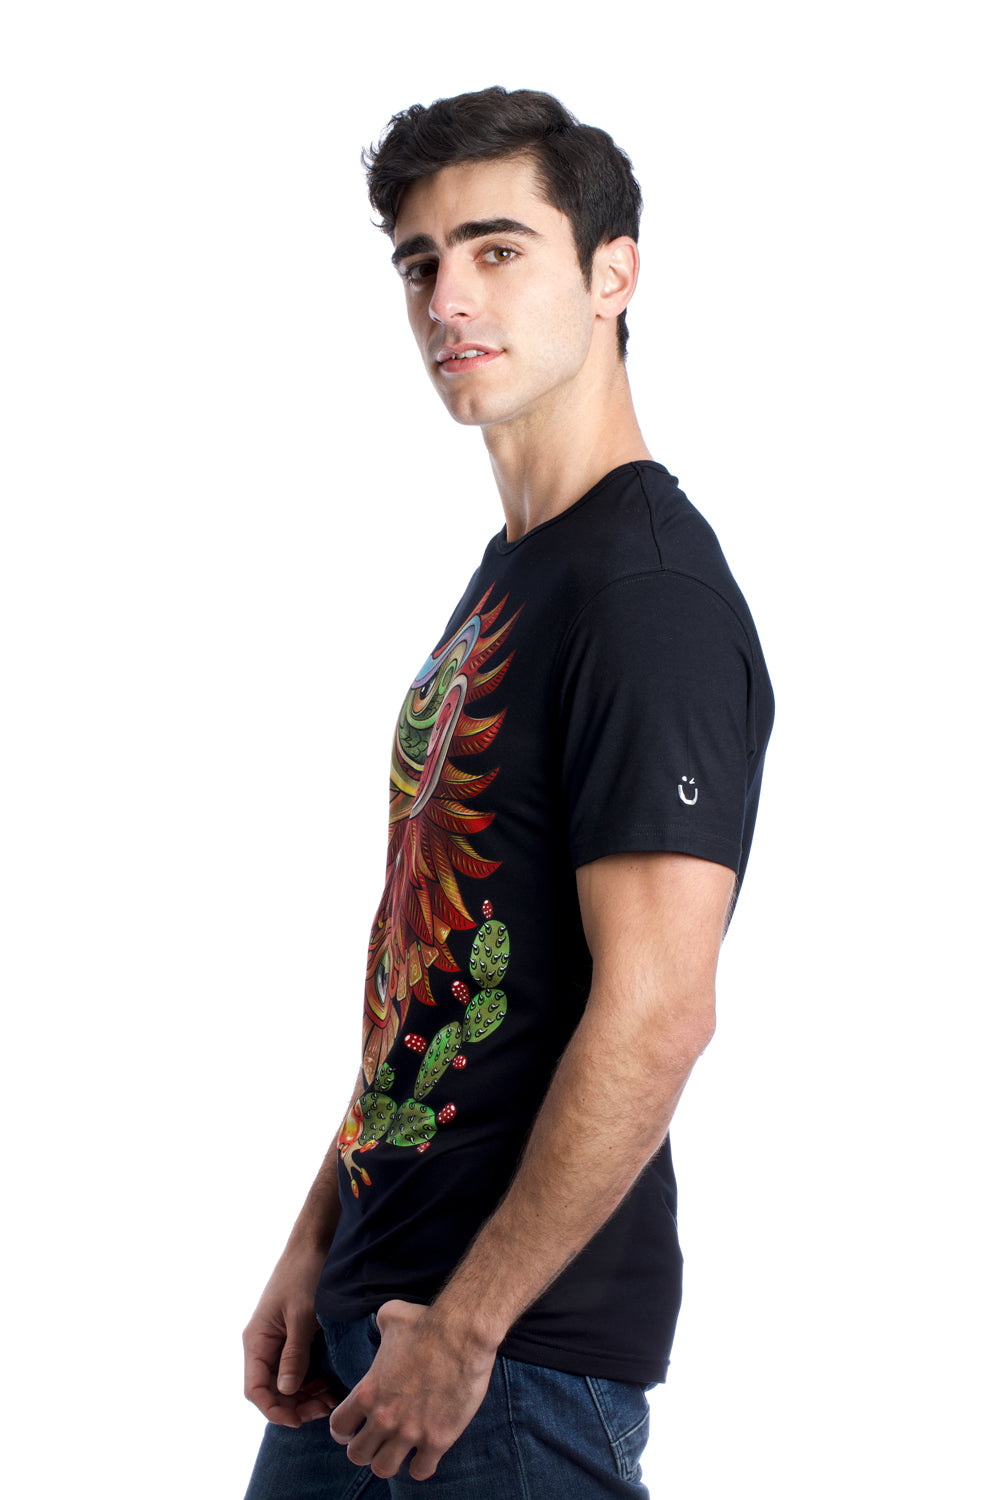 EVOLUCION MX - T-Shirt Men - ¡Ay Güey! USA